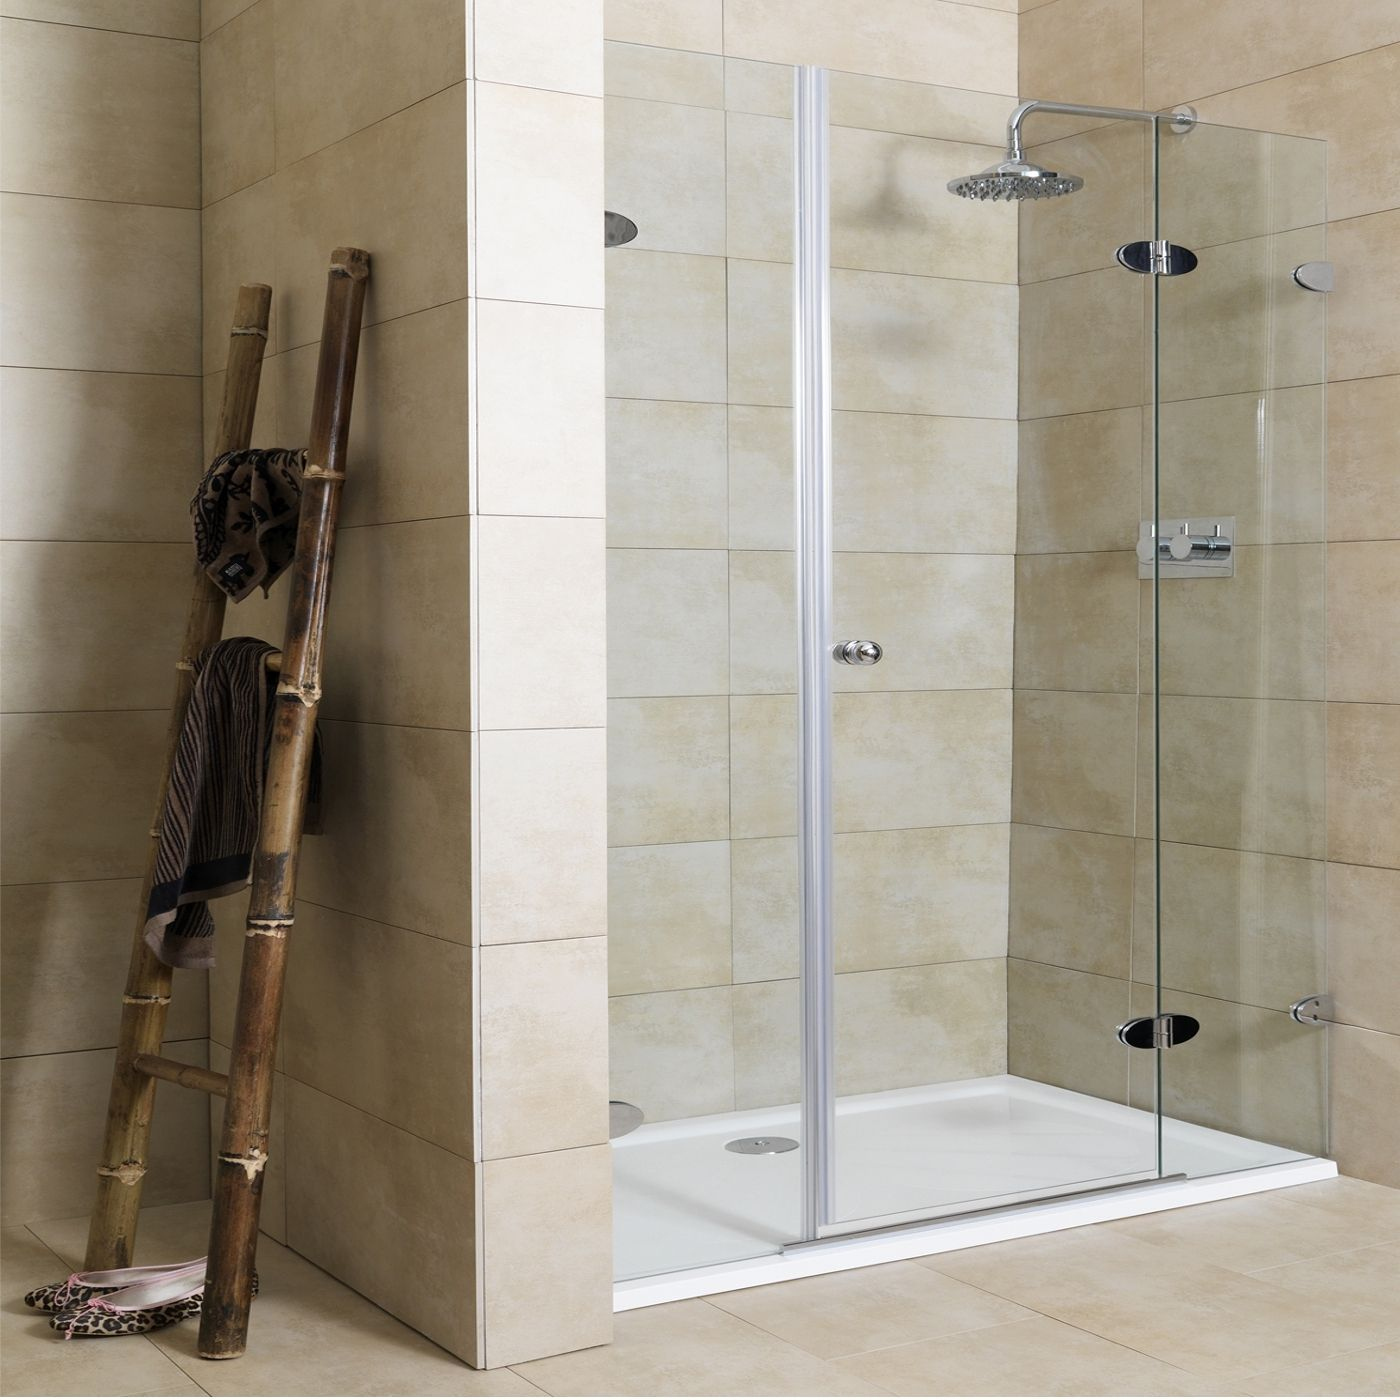 Bathroom Shower Doors Frameless - Bath shower doors glass frameless